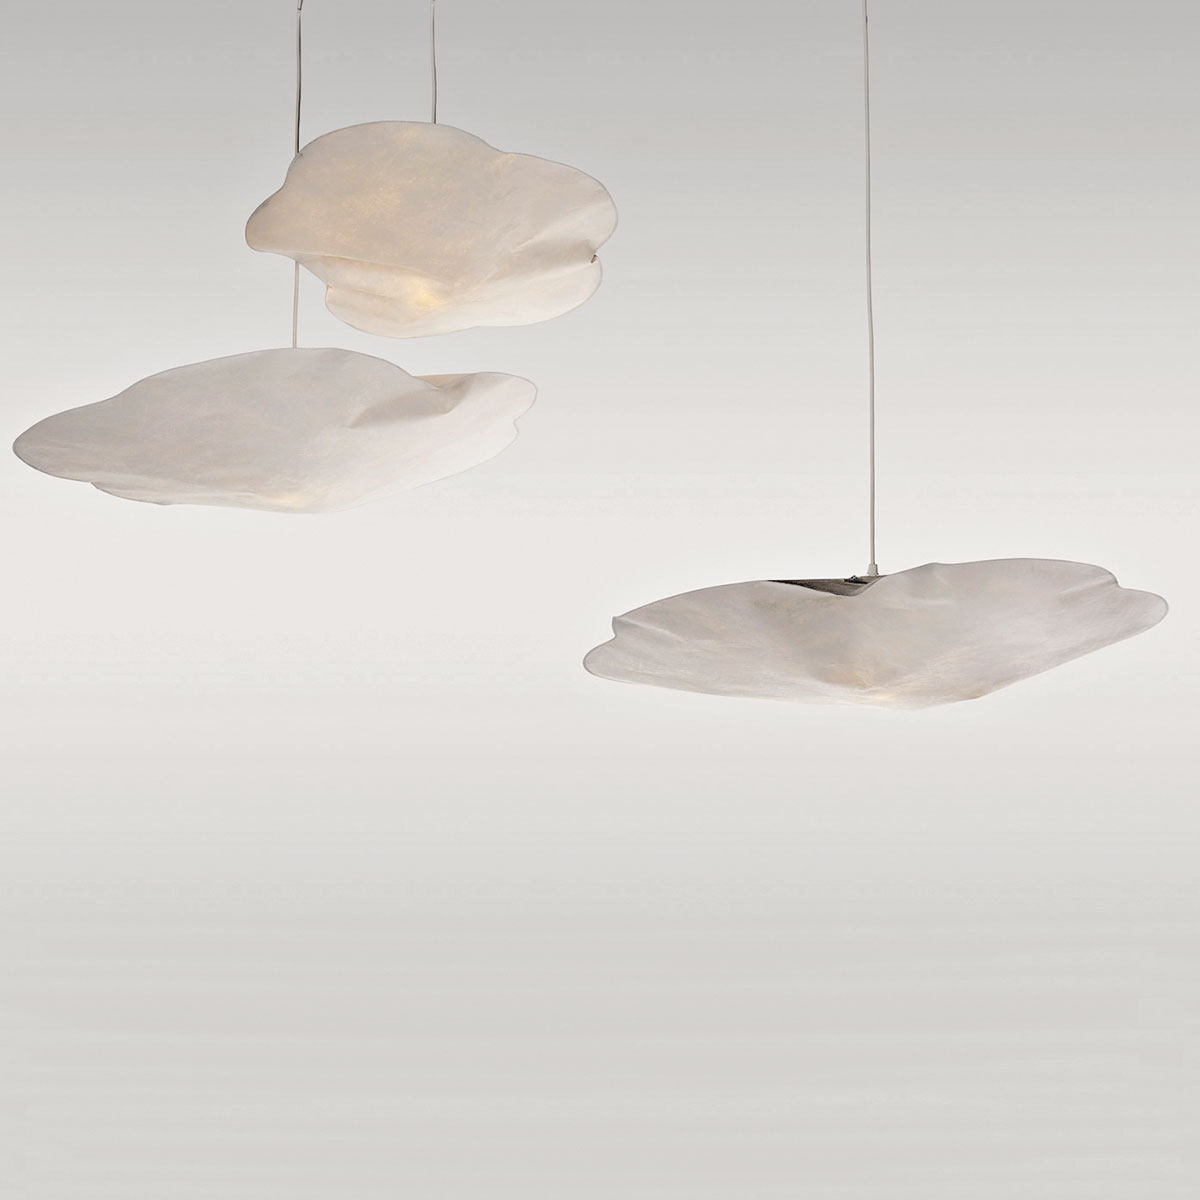 Suspension Luminaire Papier Suspension Nuage